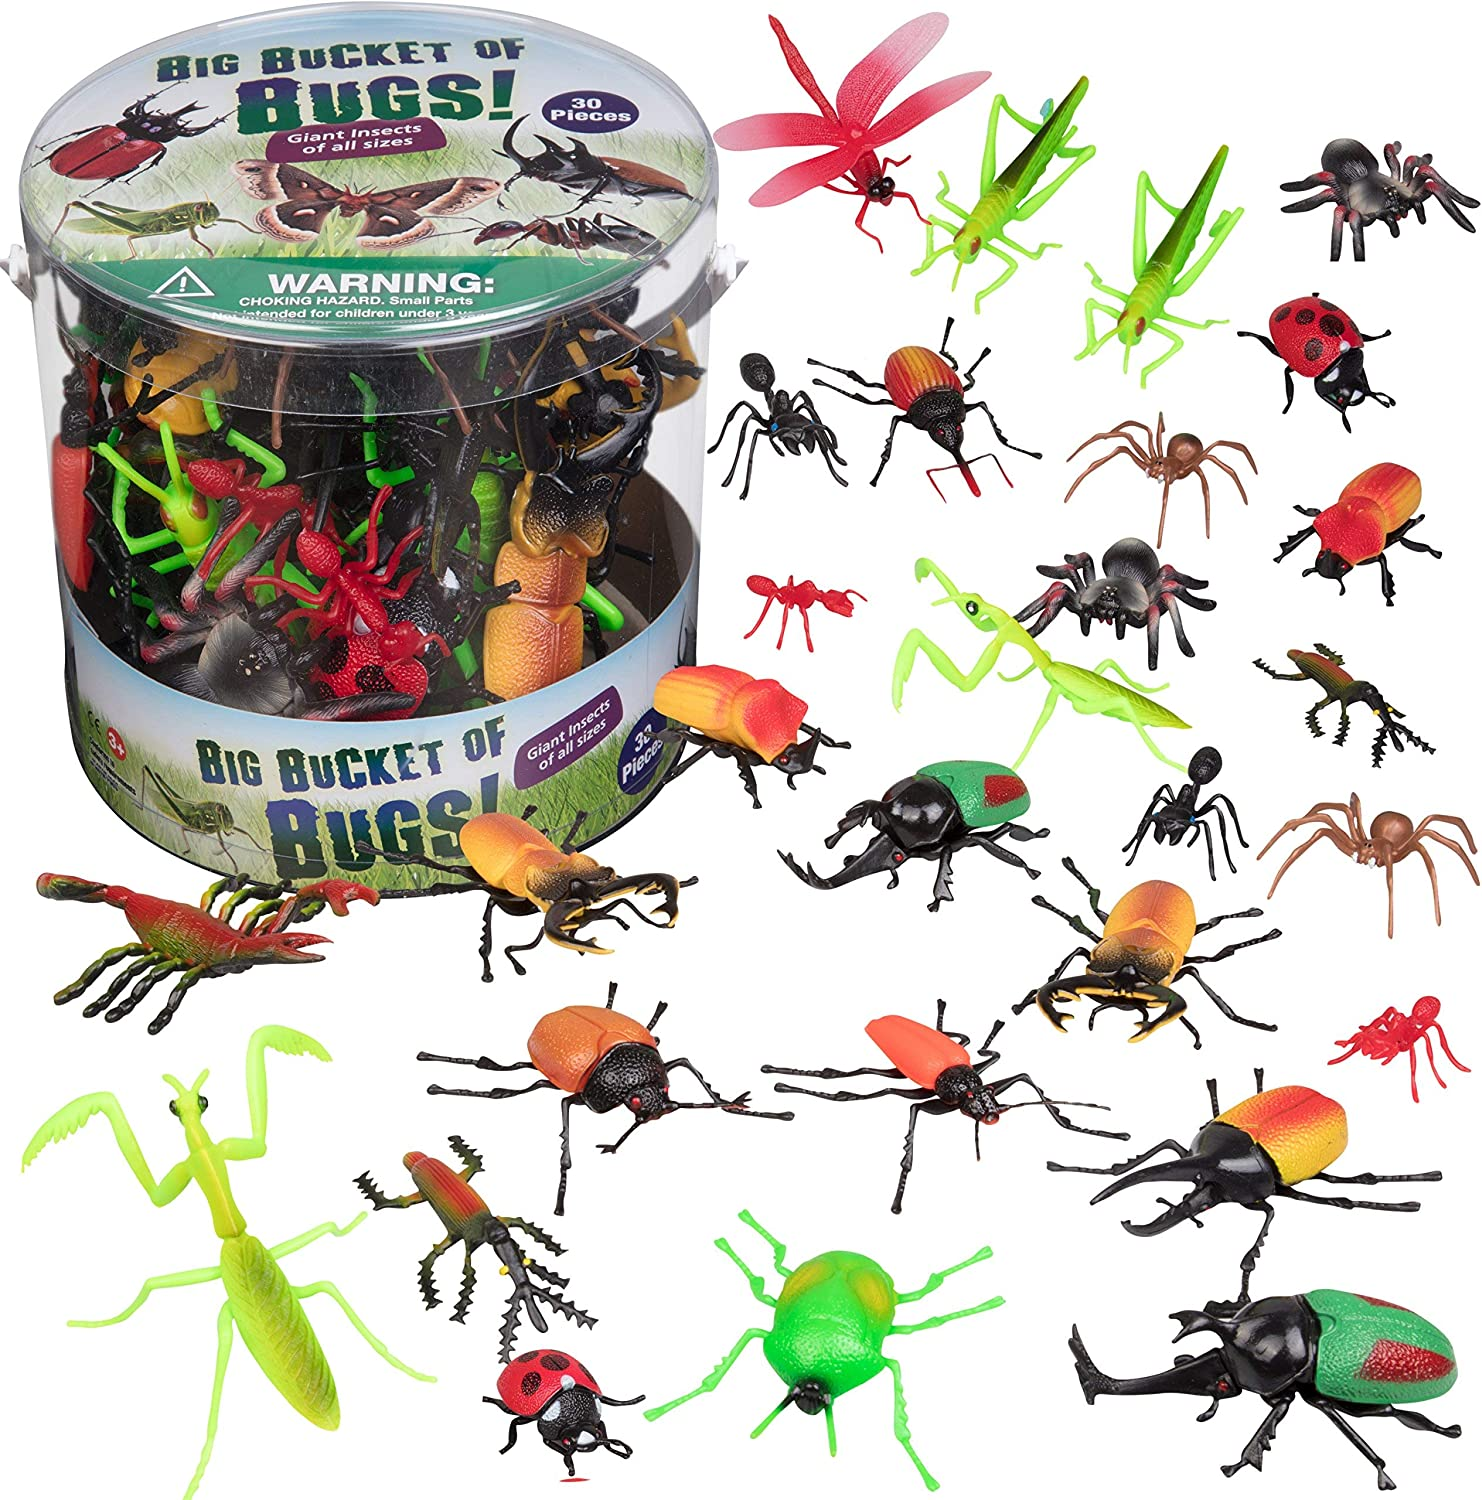 Toy Bug Action Figure Set - 30 Piece Playset, 15 Unique Sculpts- Giant Insects Educational Toy Playset (Ants, Tarantula, Spiders) - 2in-4in Figures, Fun for Pranks or Summer Gift